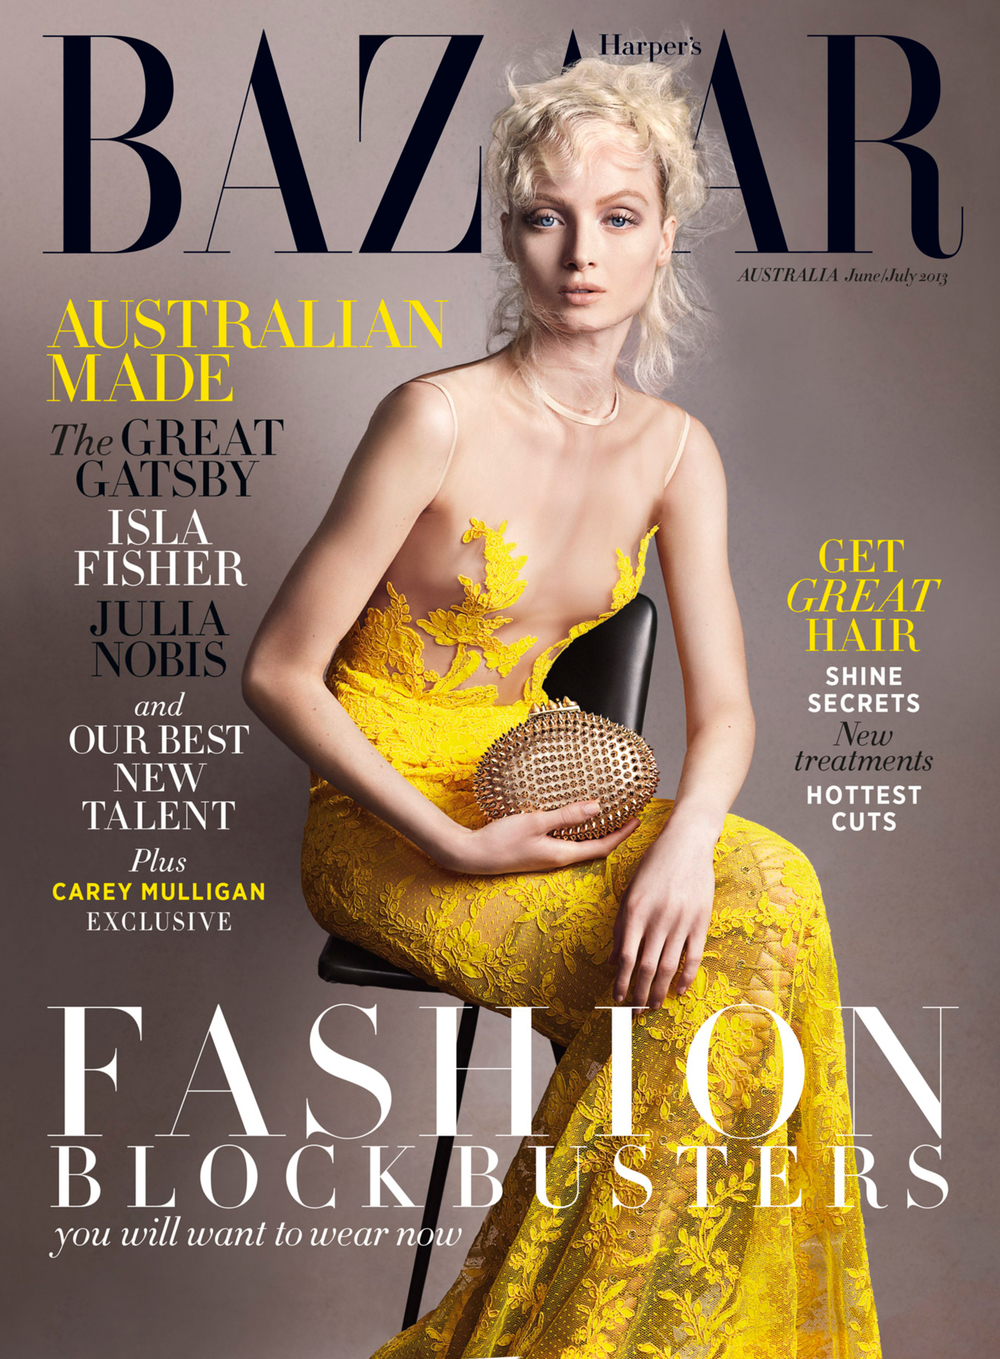 HARPERS BAZAAR July 13 Cover